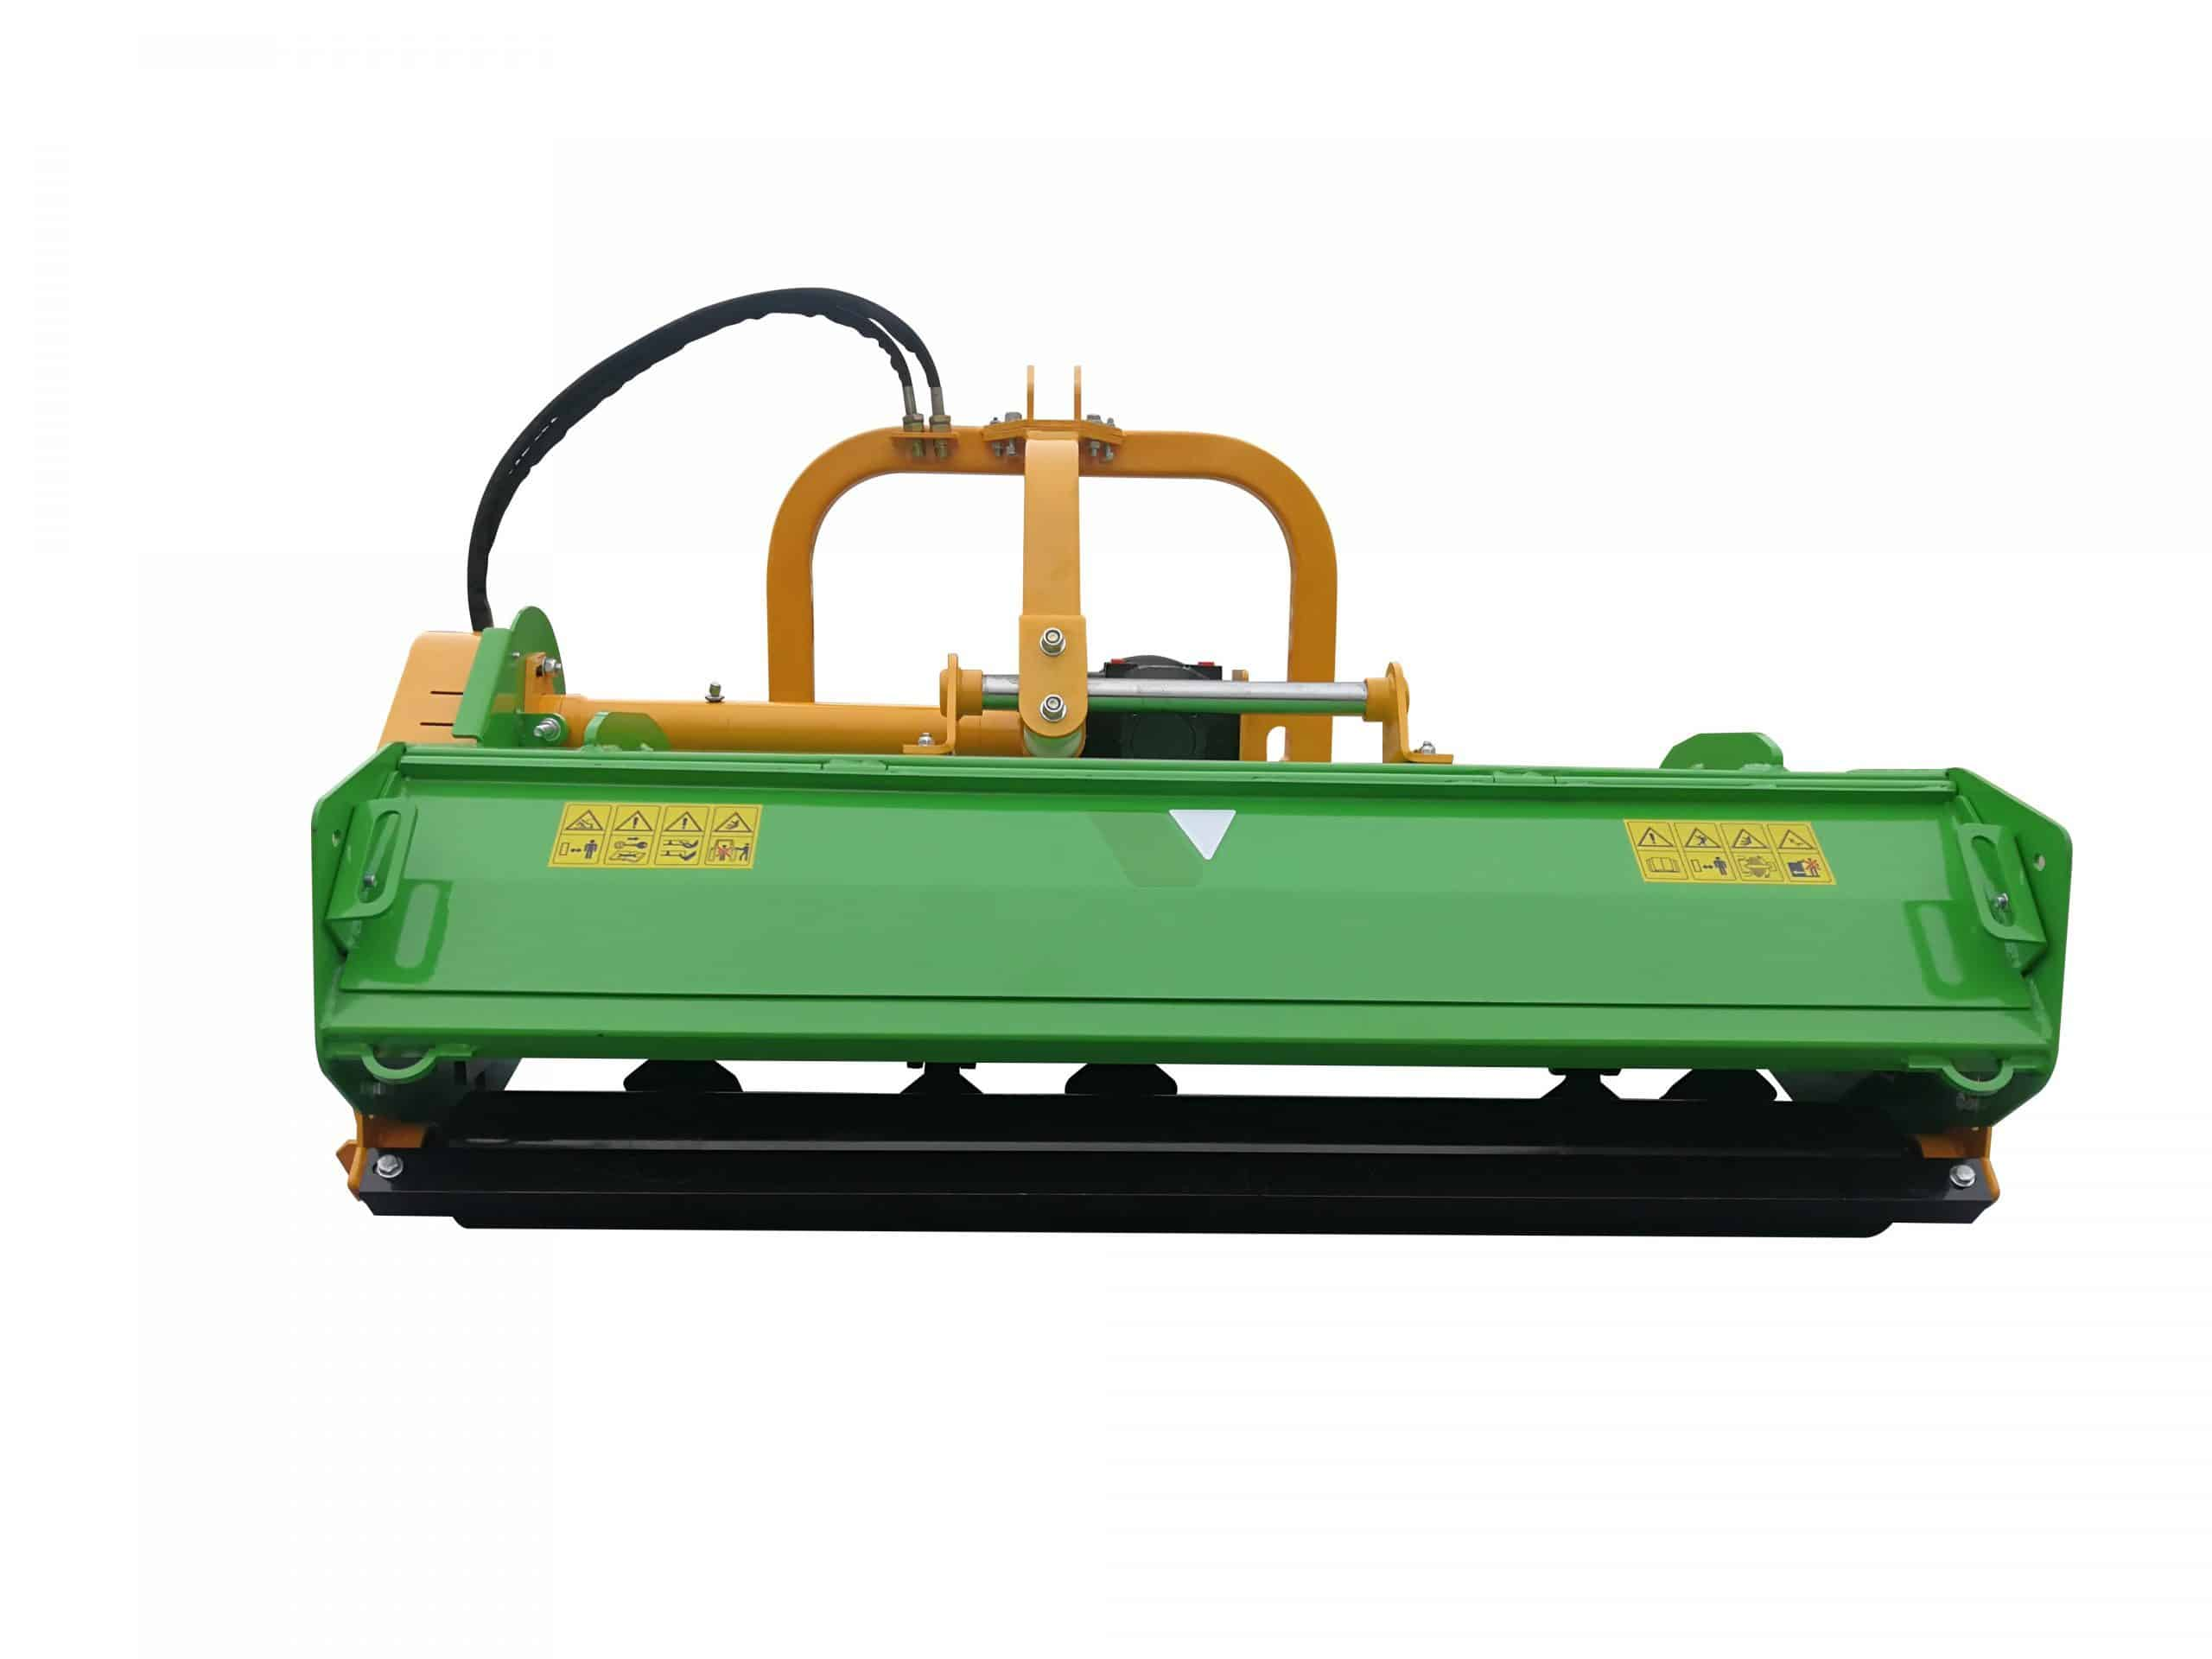 Victory FMHDH Series Heavy Duty Flail Mower with Hydraulic Side Shift